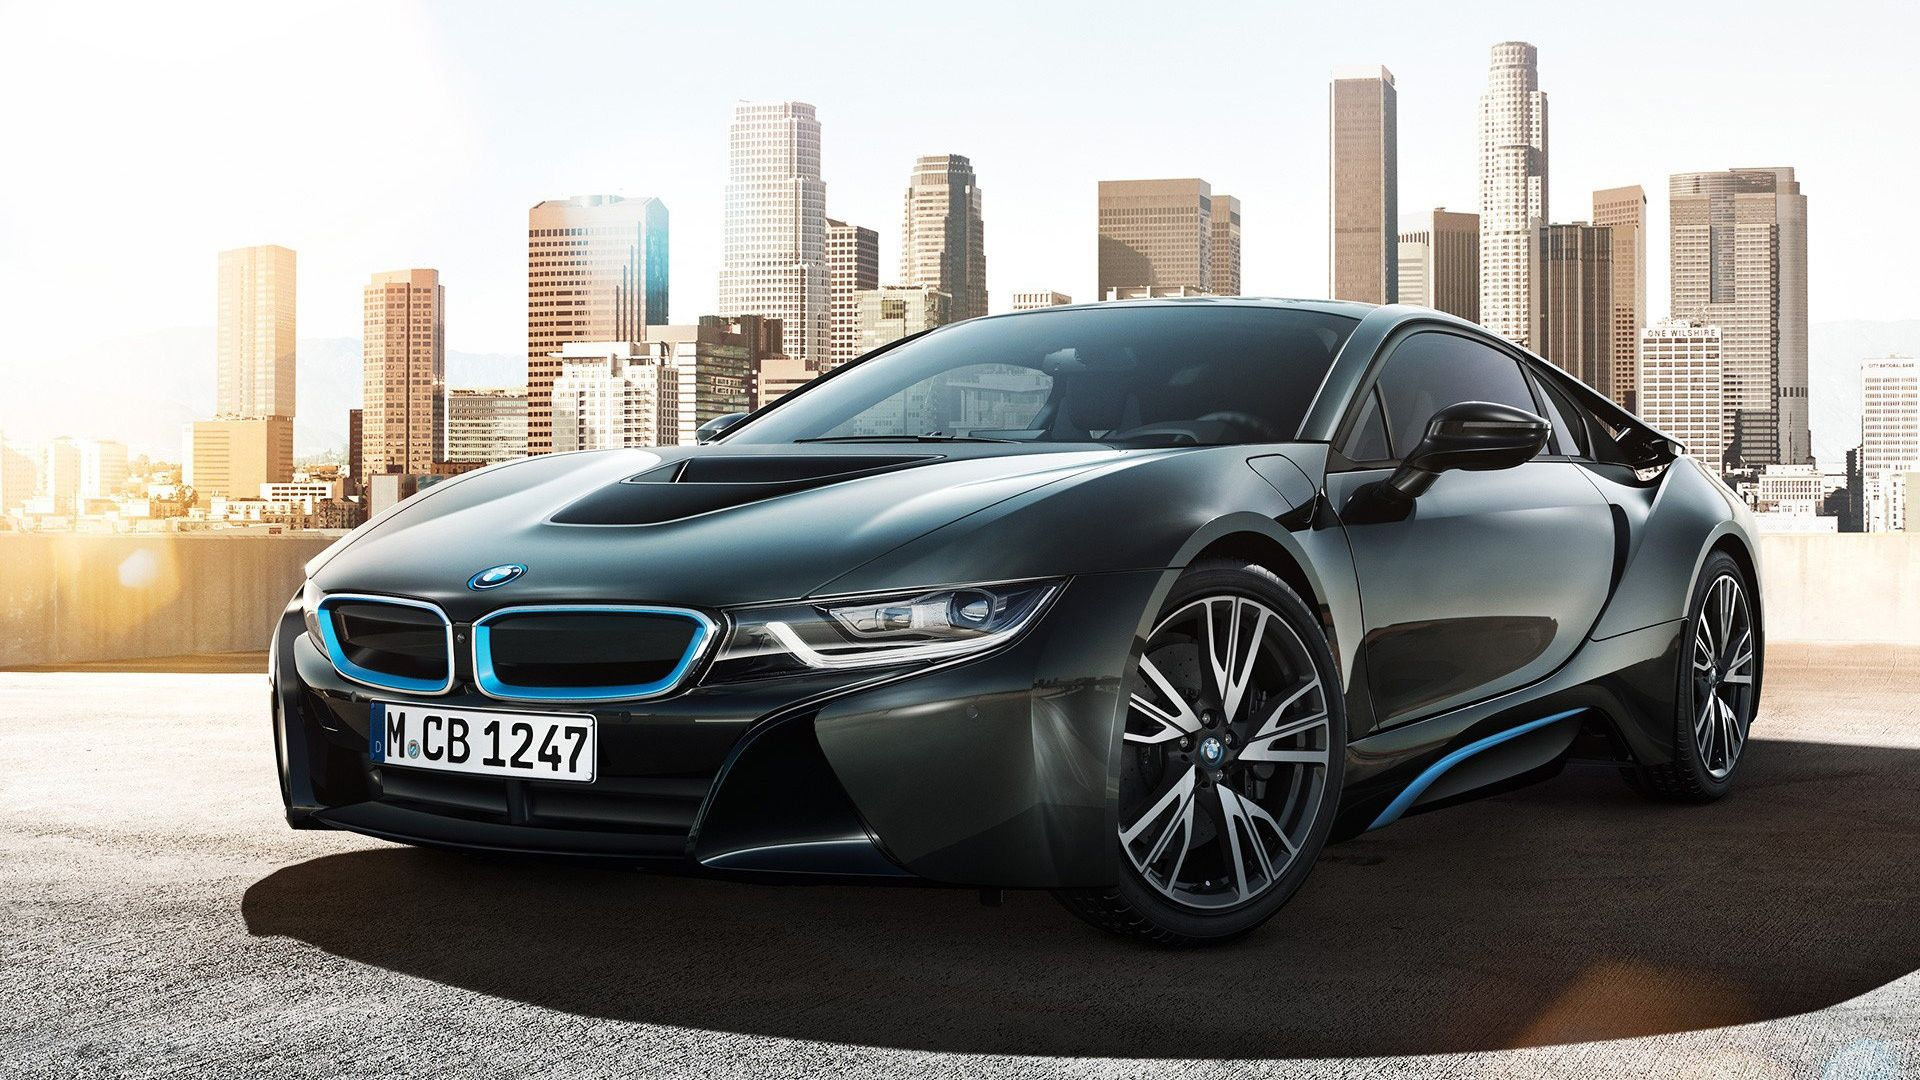 free download pure 100% bmw hd wallpapers, latest photoshoots, hot